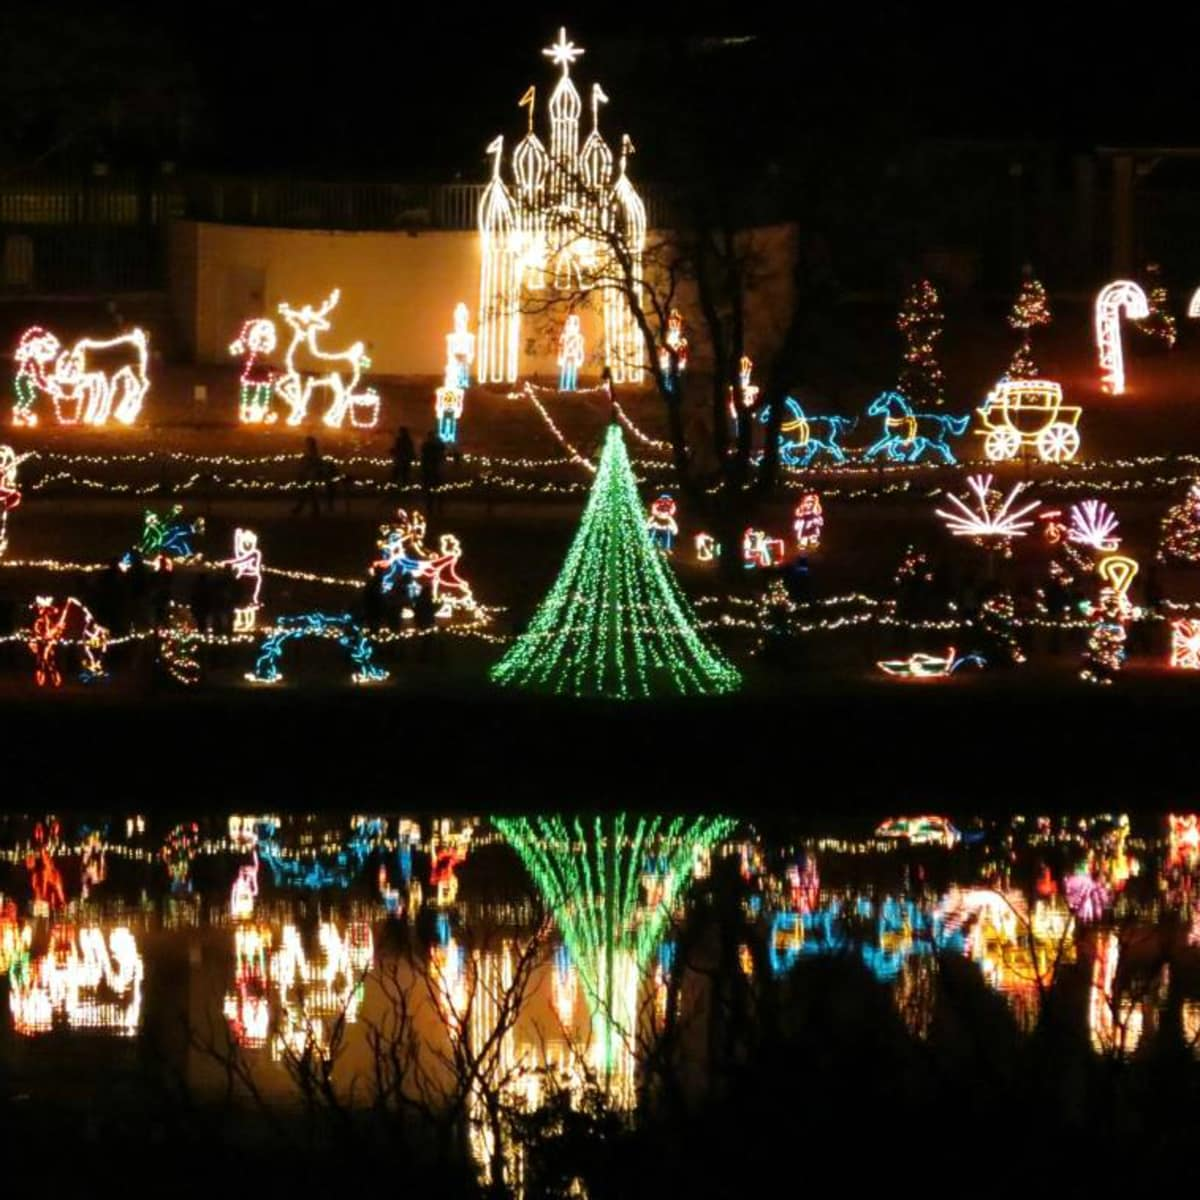 Marble Falls Walkway of Lights Christmas holiday display